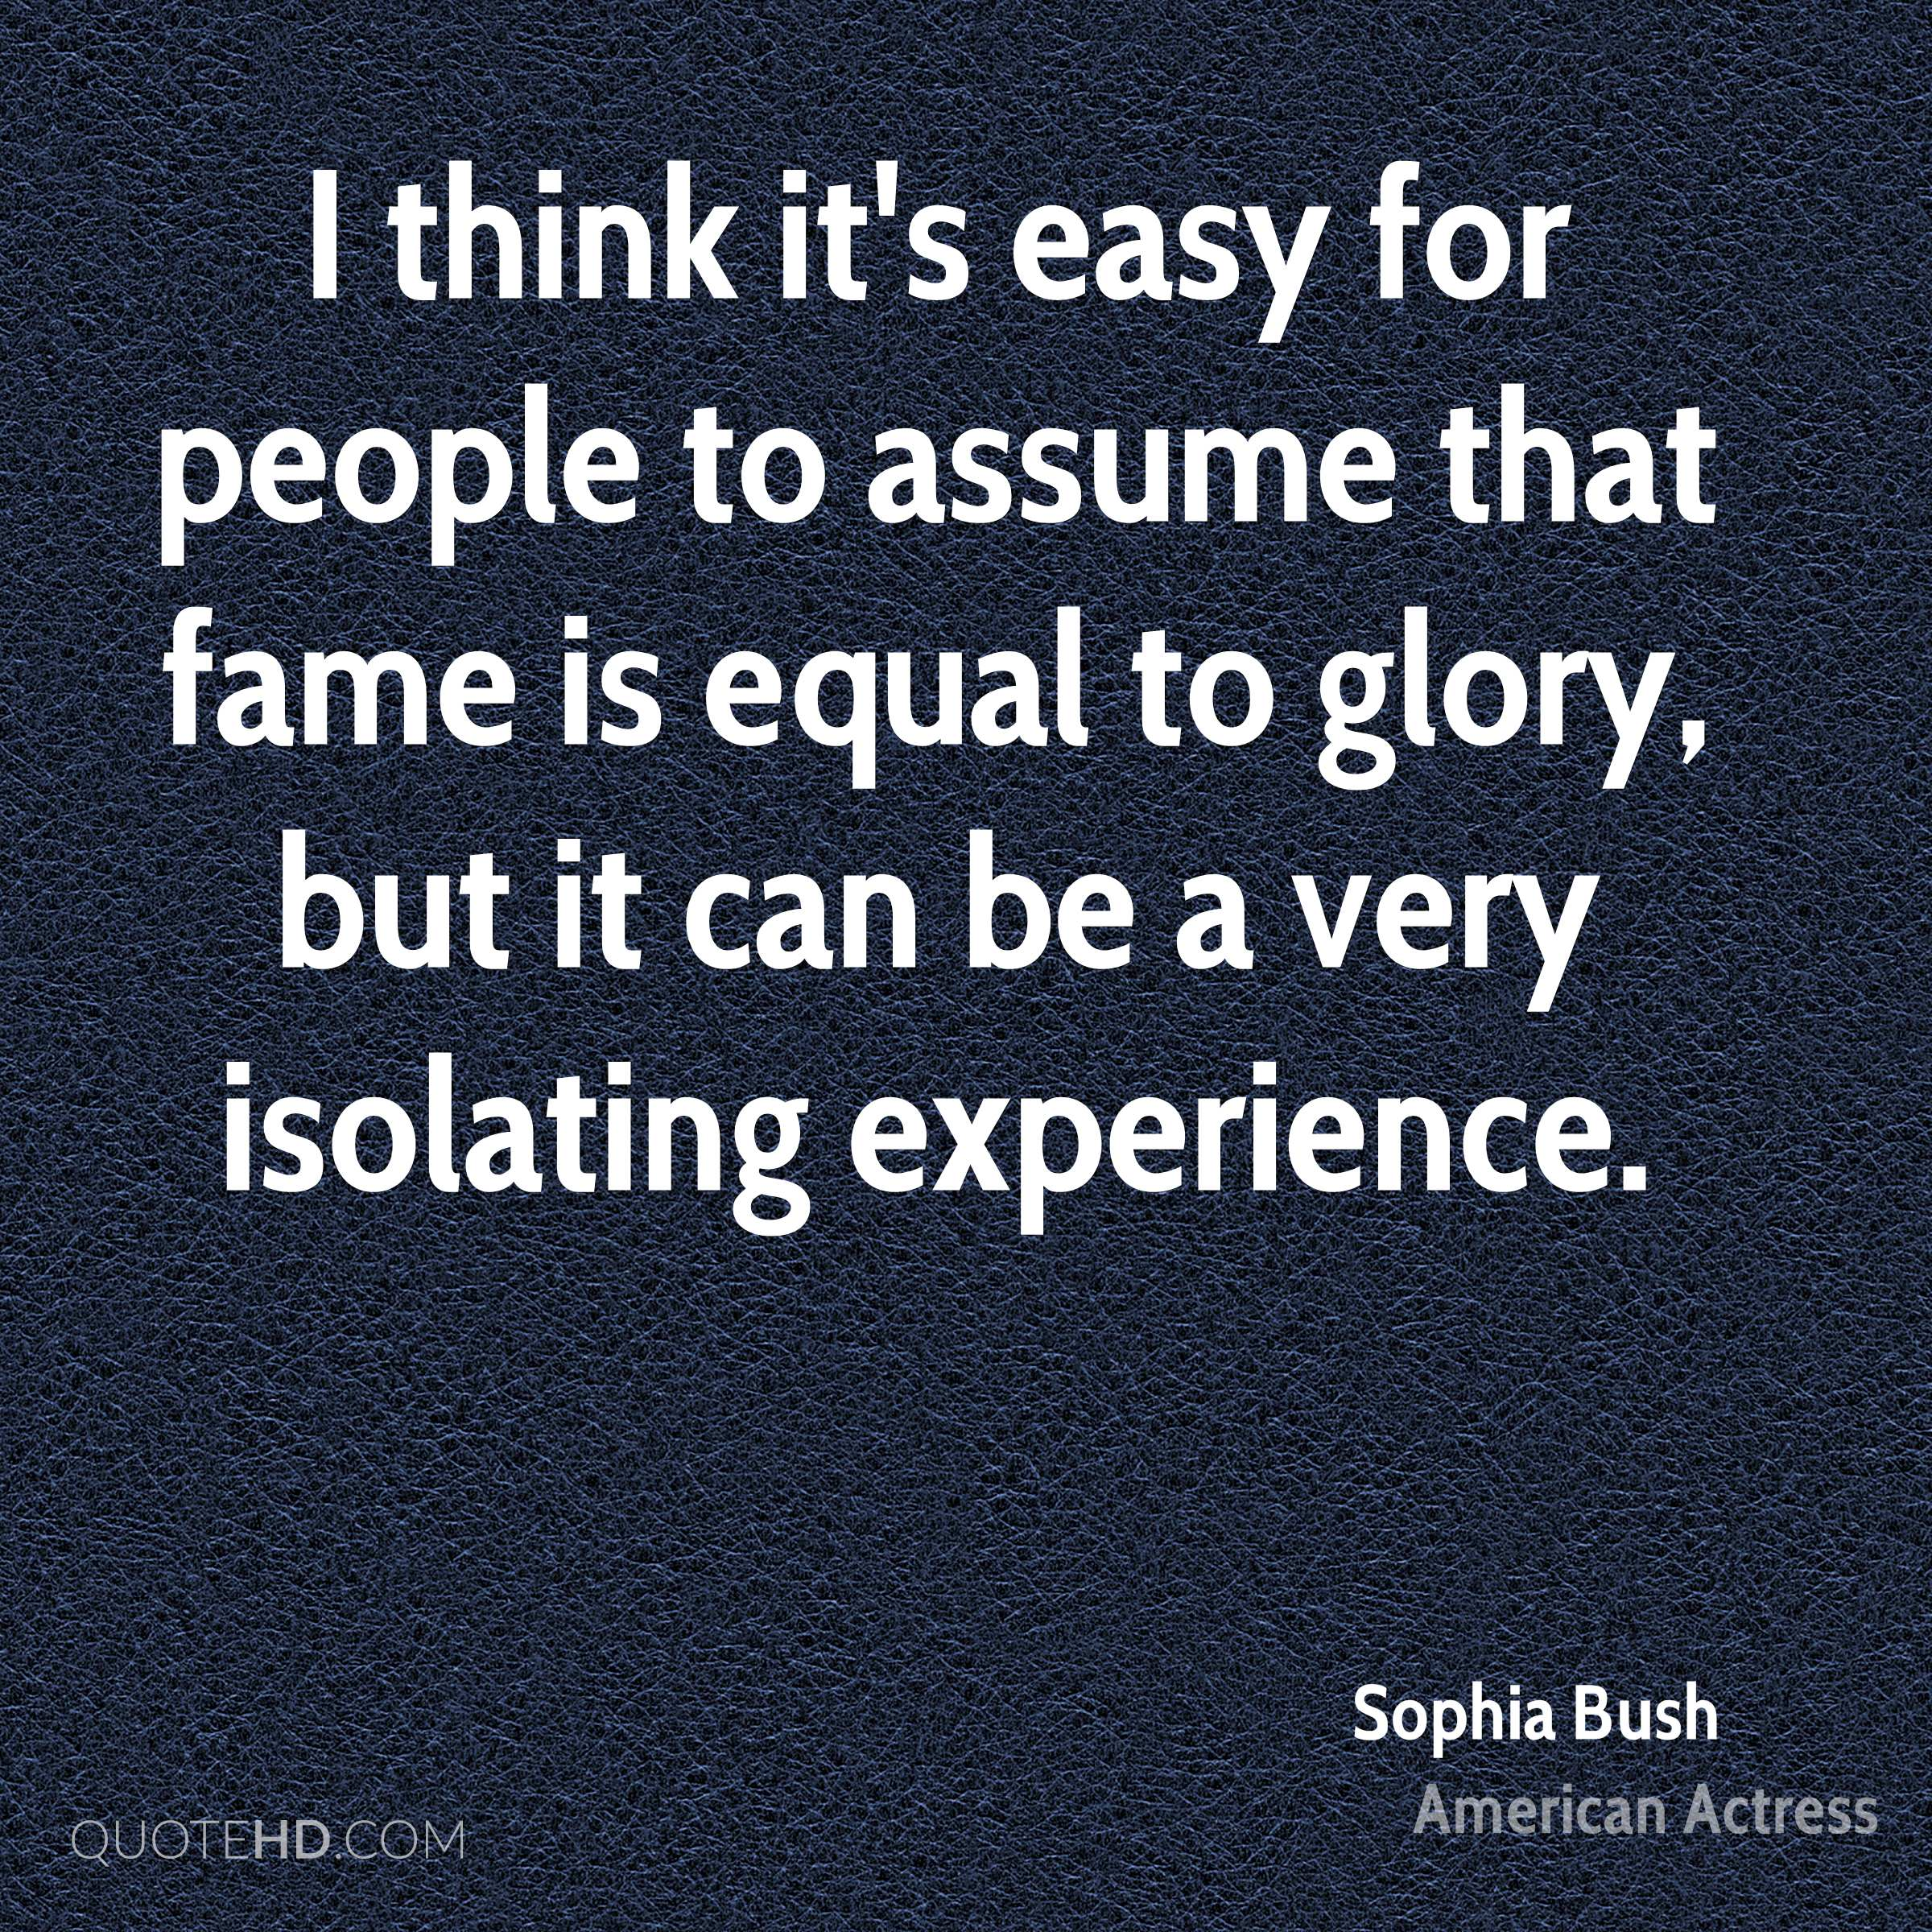 I think it's easy for people to assume that fame is equal to glory, but it can be a very isolating experience.